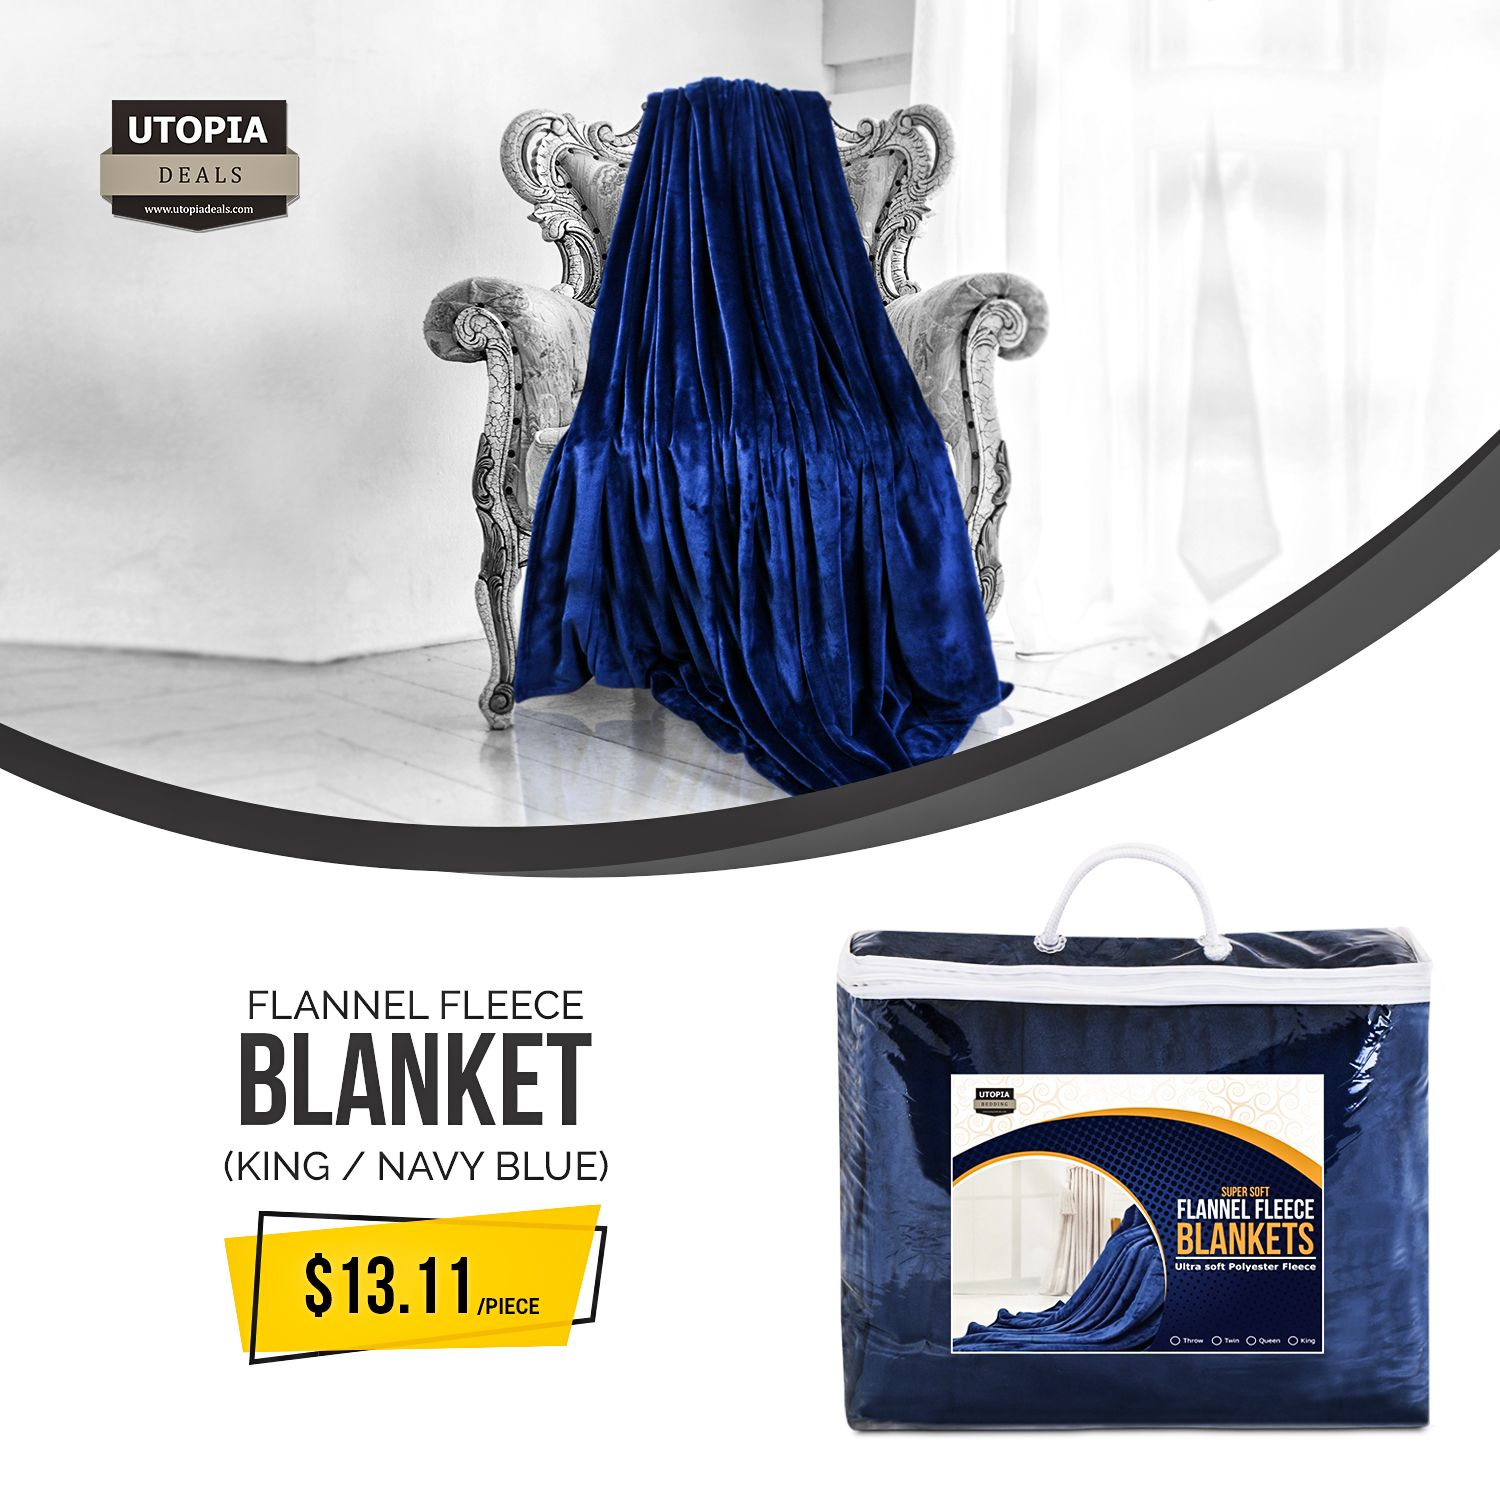 Buy Flannel Fleece Blanket On Bulk At A Competitive Price Of 13 11 Piece The Lightweight Feature With Extra Warmth Makes The B Fleece Blanket Flannel Fleece